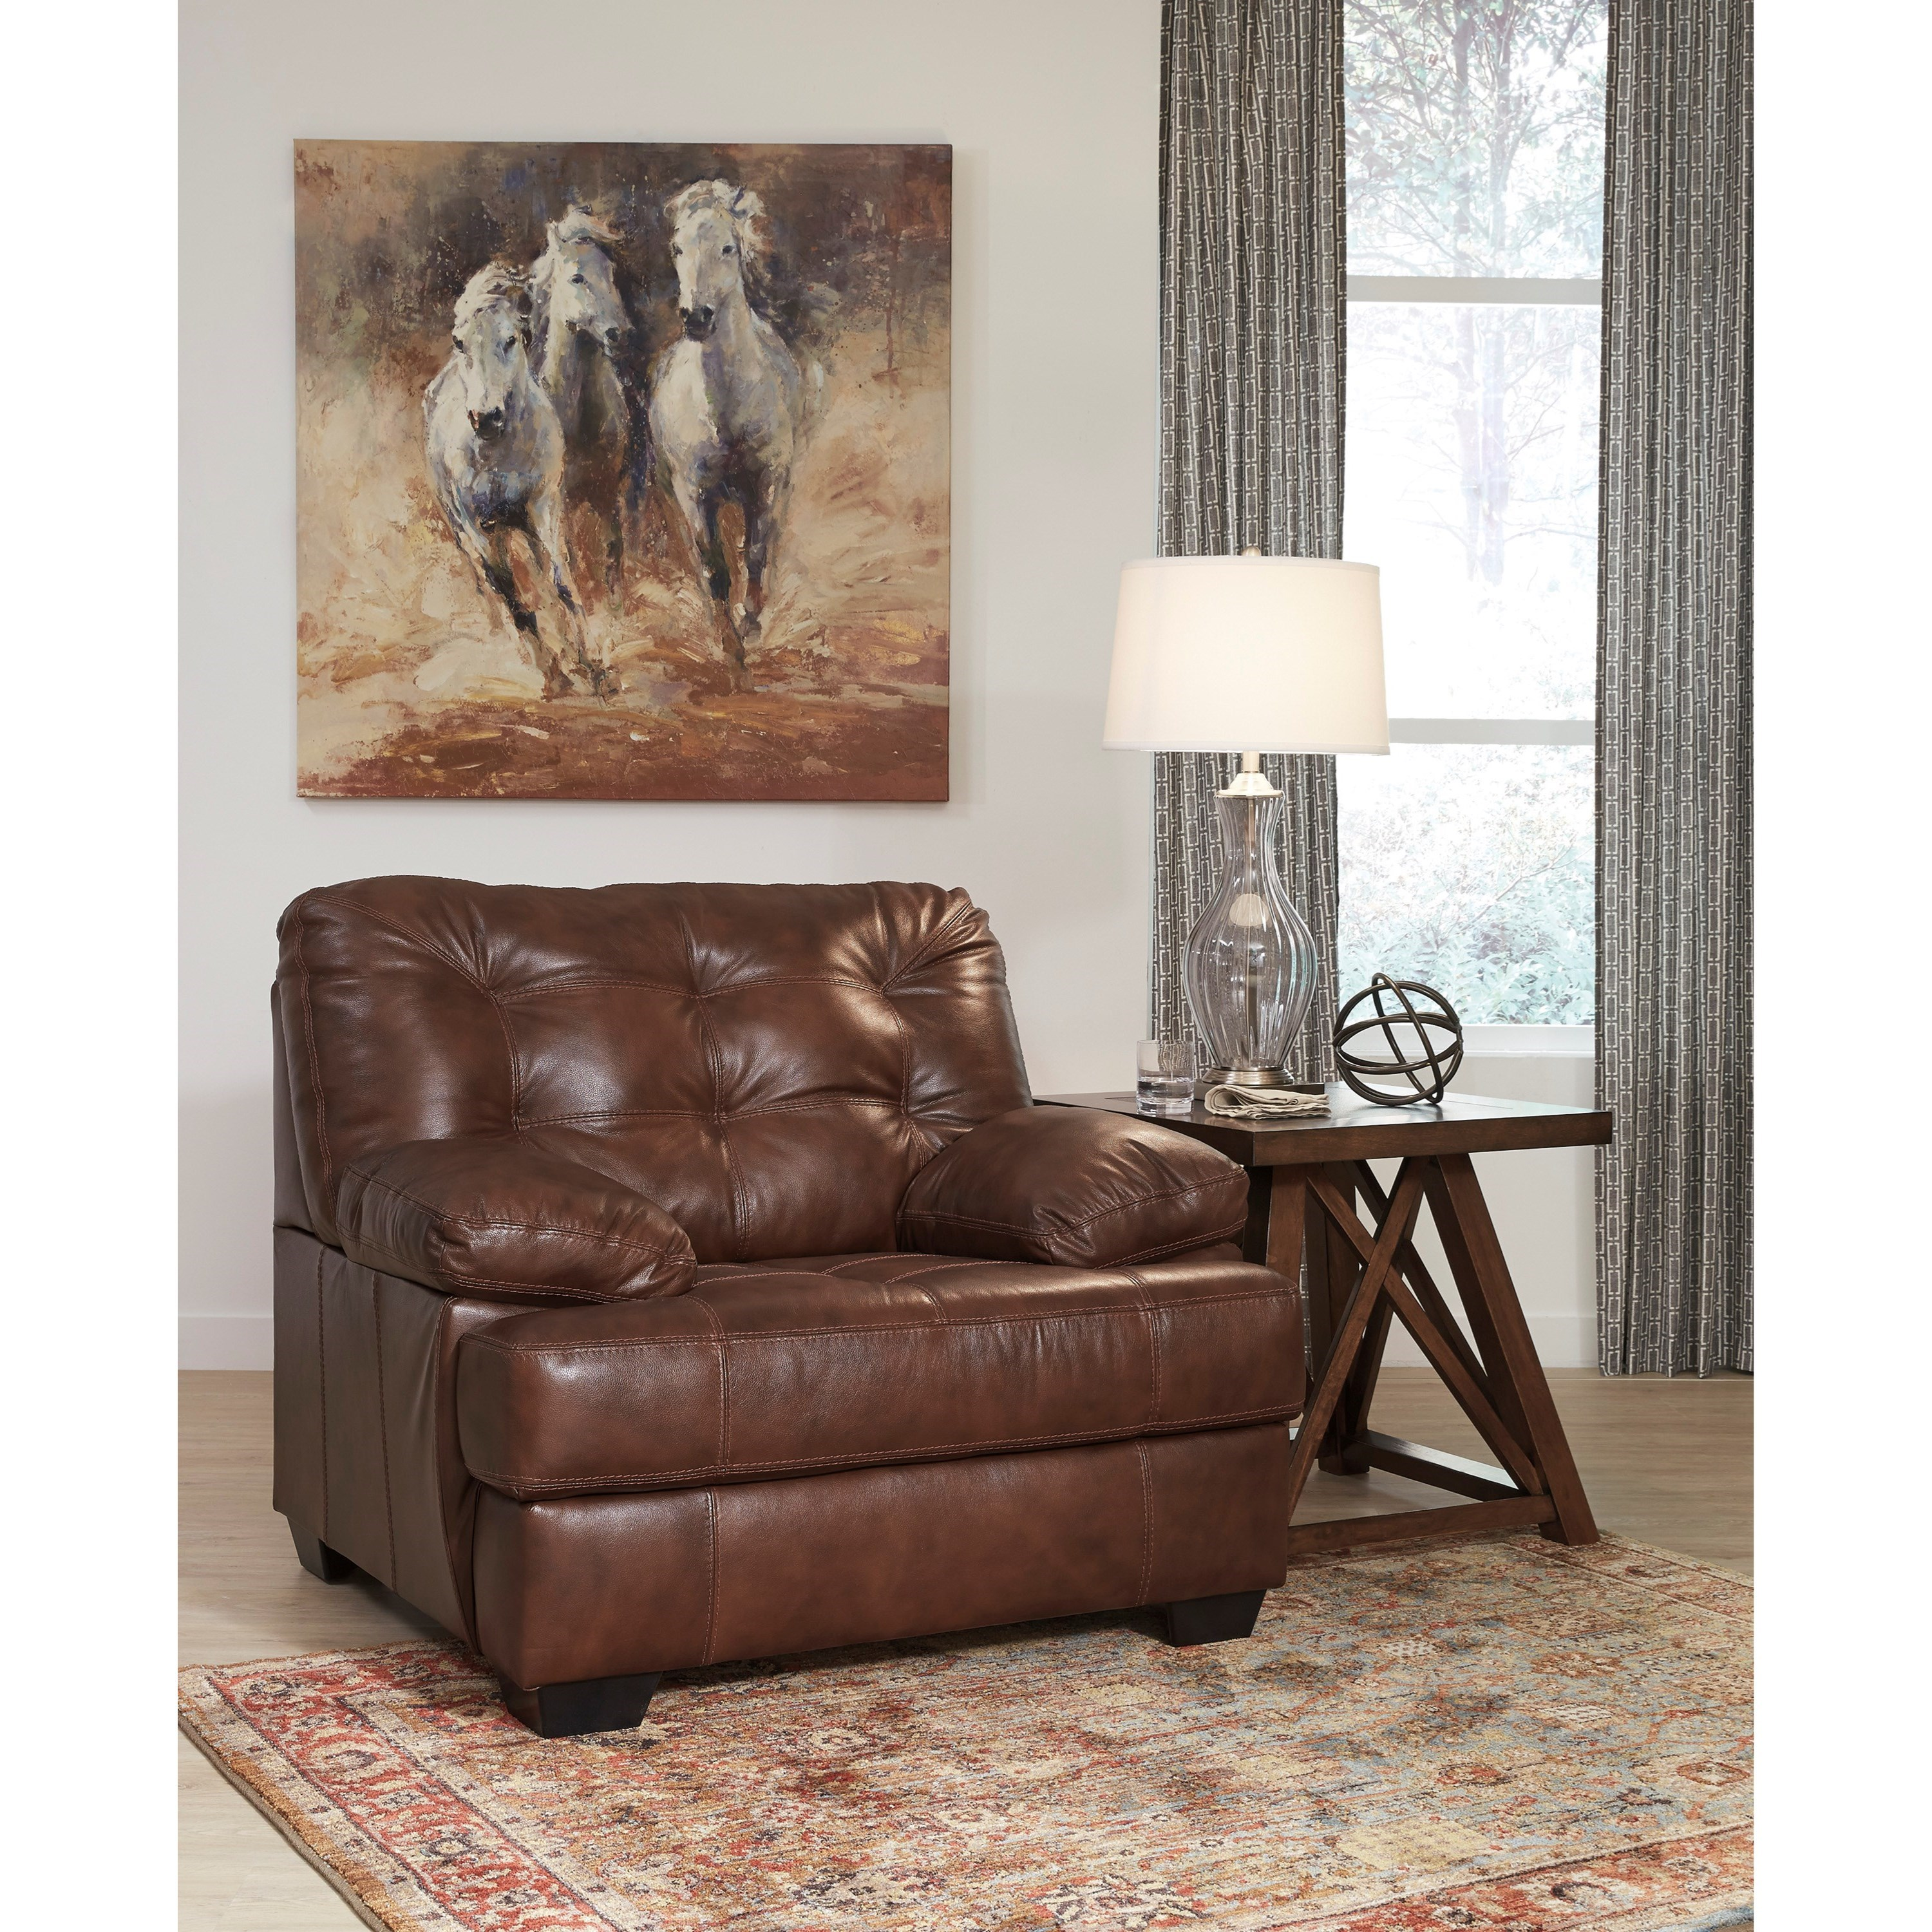 Signature Design By Ashley Mindaro 1550220 Leather Match Chair With Tufting Becker Furniture